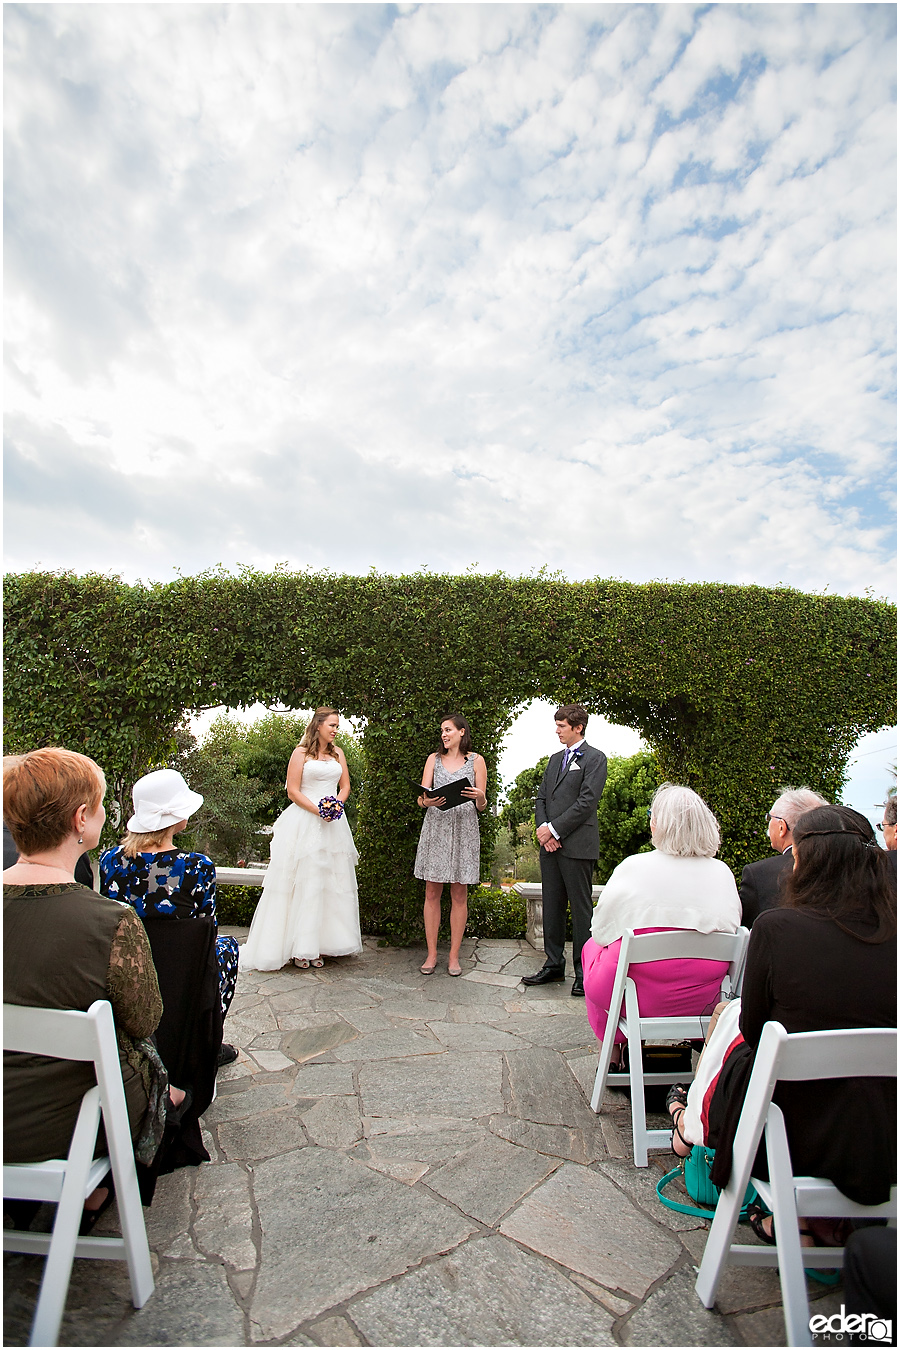 Blue sky over Thursday Club Wedding Ceremony